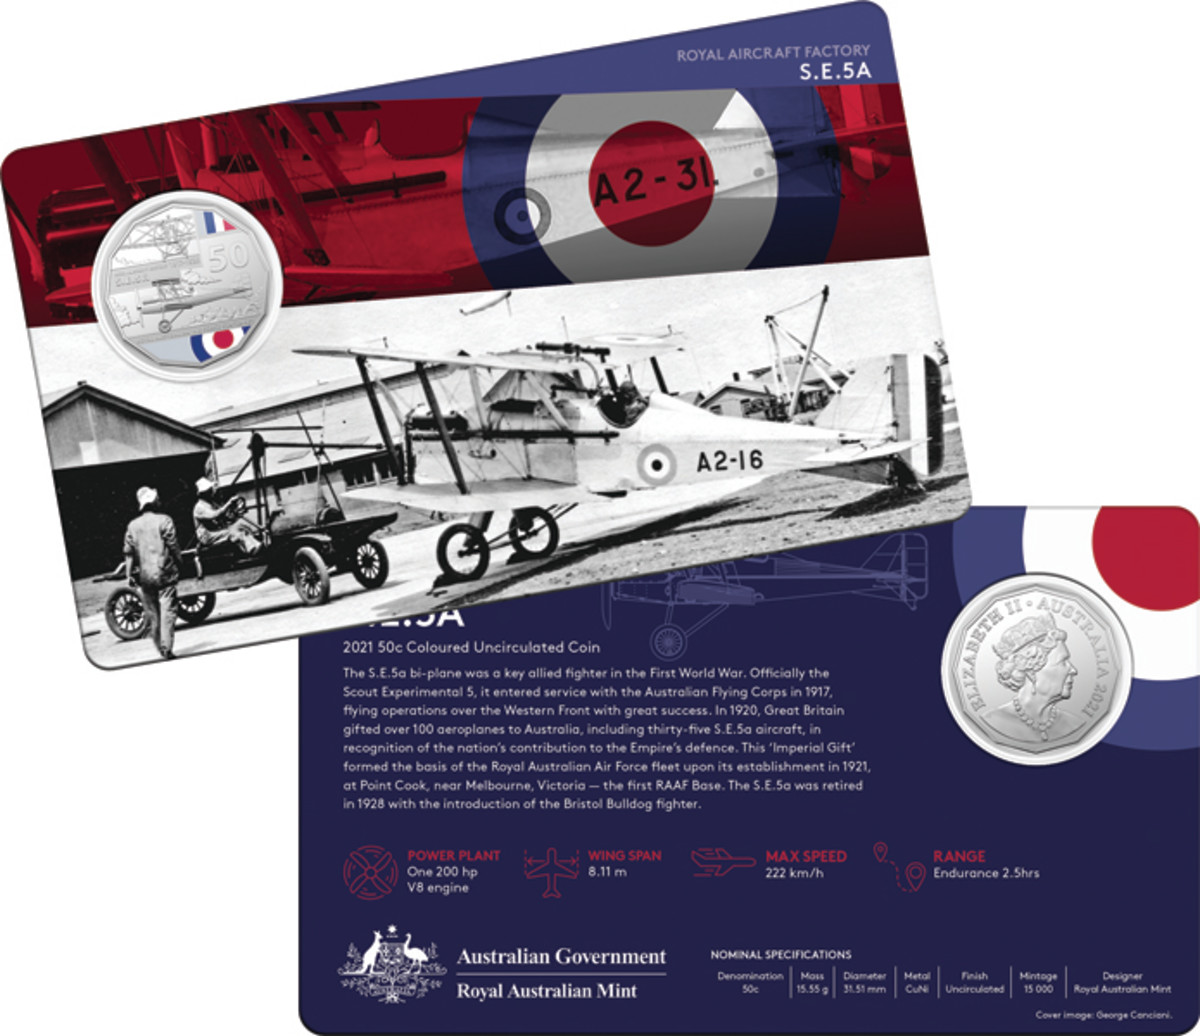 """The Scout Experimental 5 or """"S.E. 5a"""" was the first bi-plane to be used by the Australian Flying Corps in 1917. This plane was a key allied fighter in World War I."""